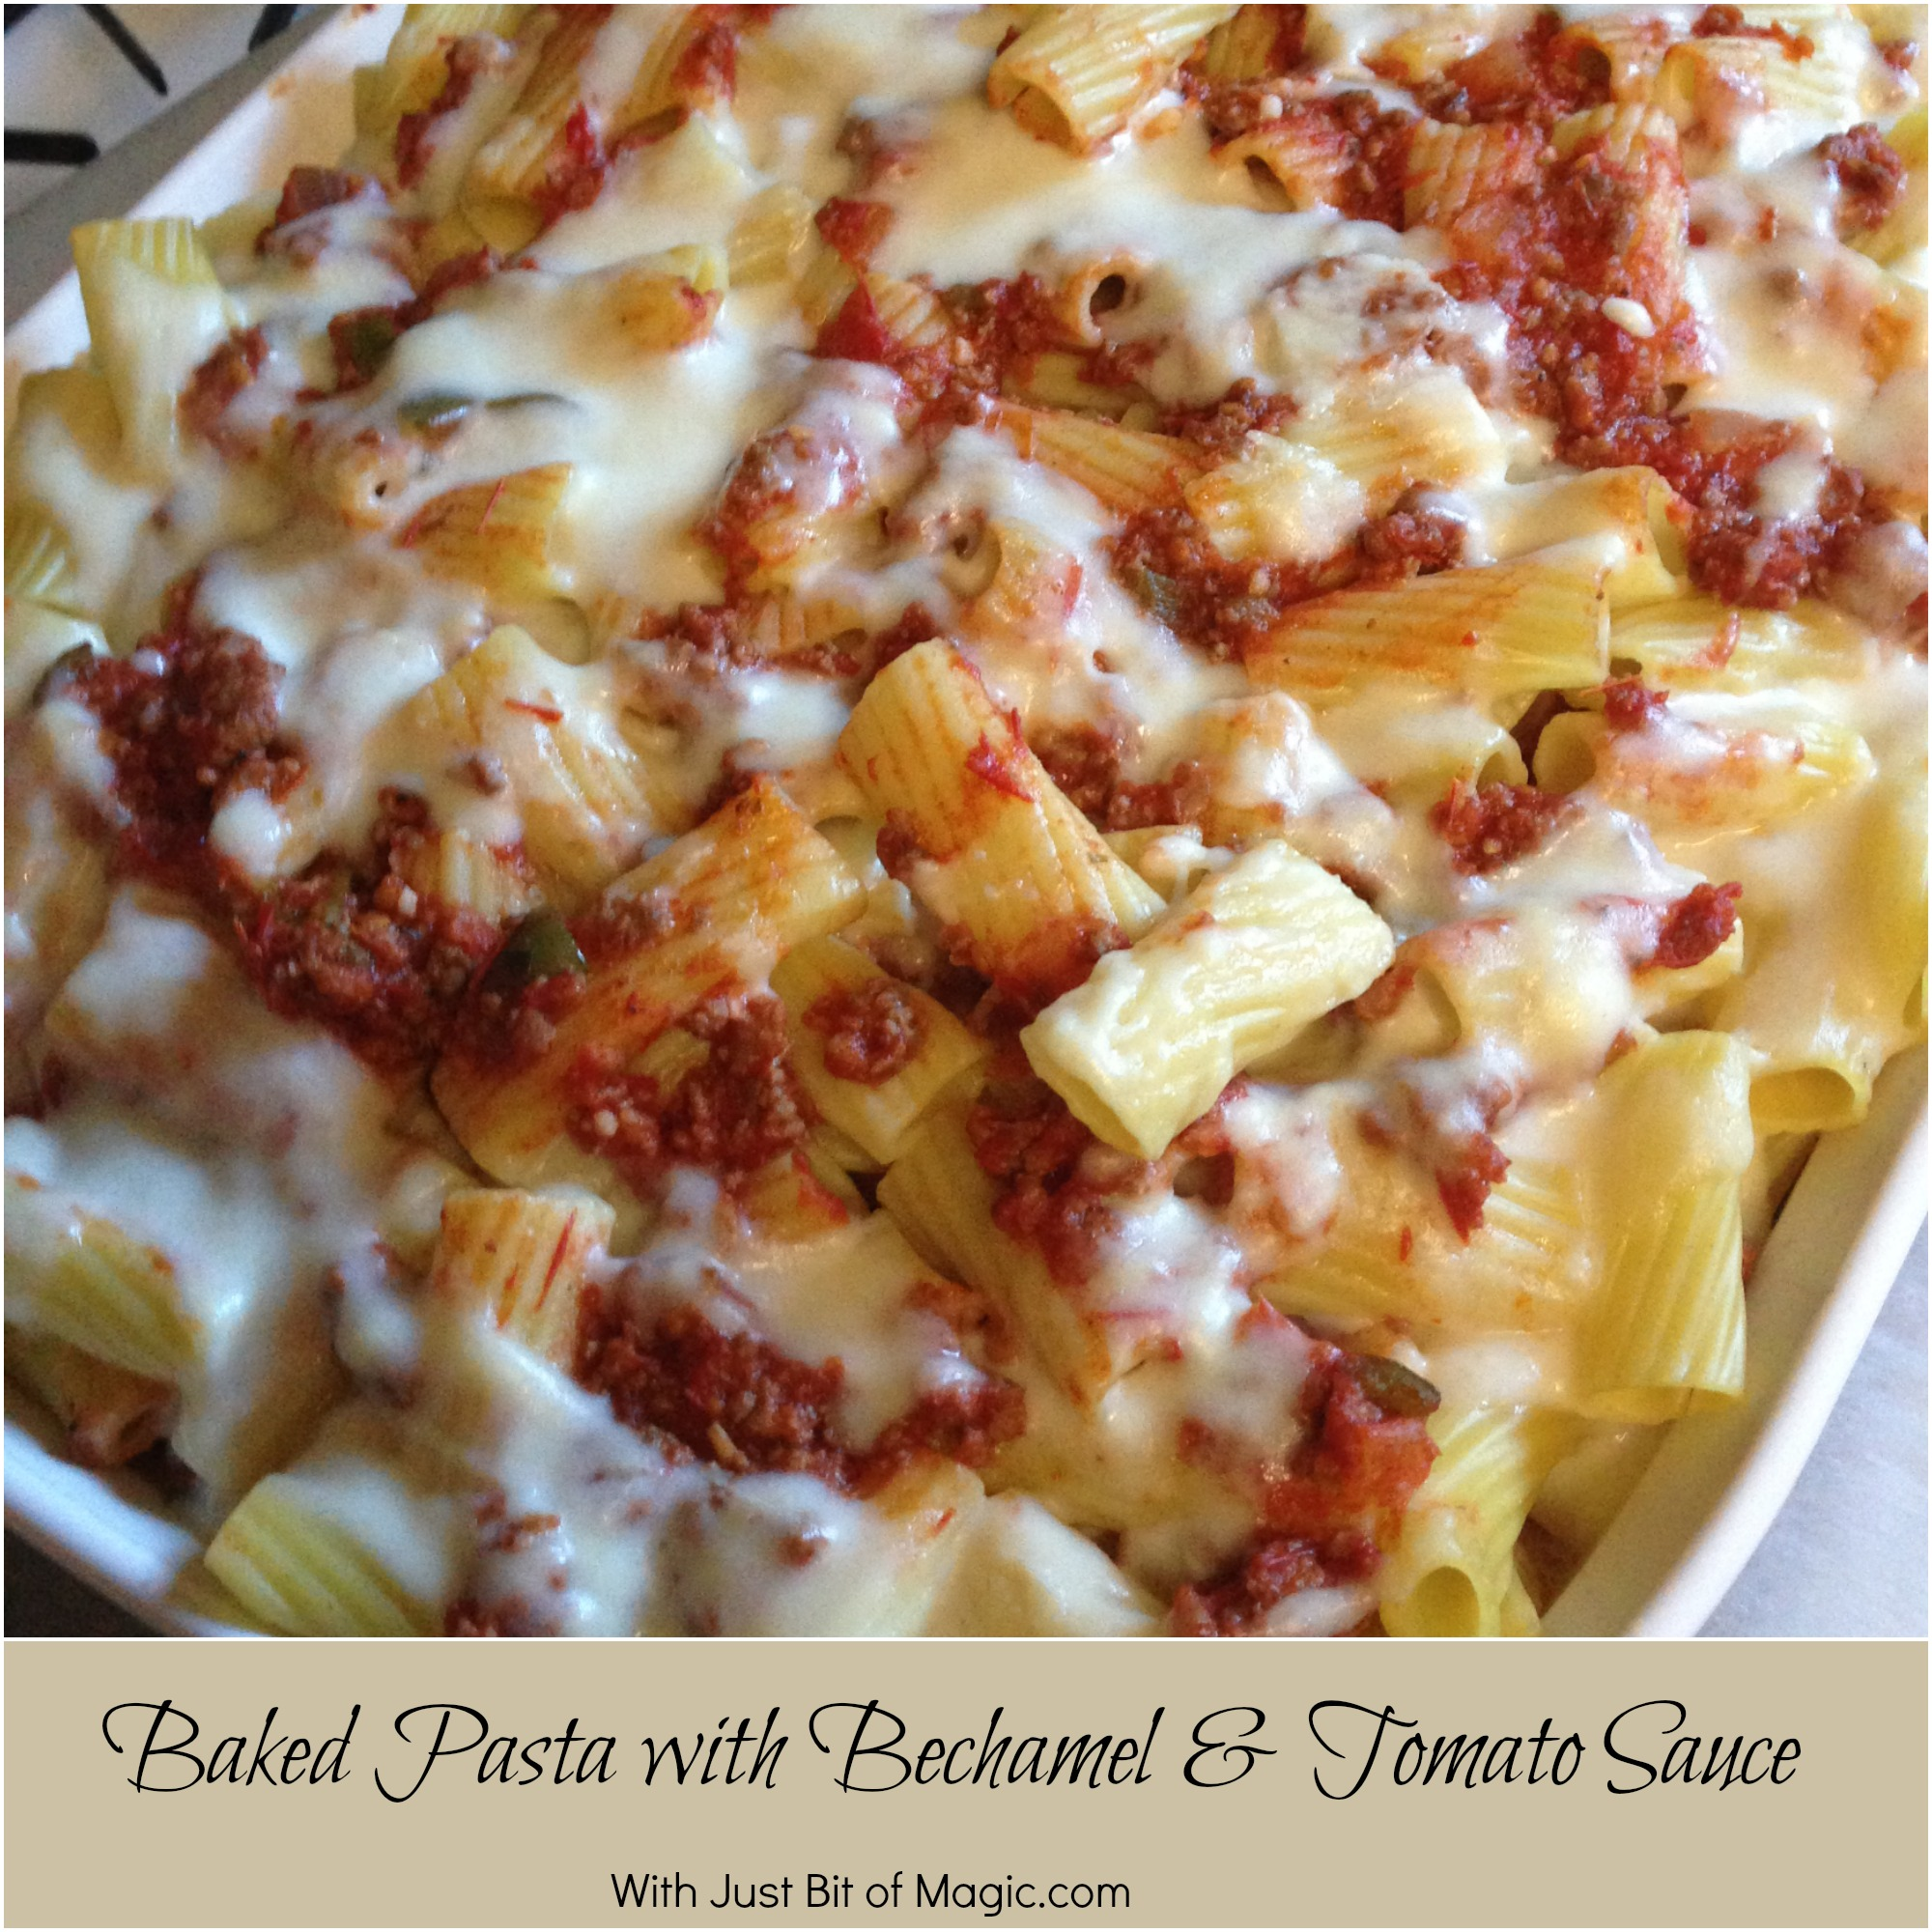 Baked Pasta with Bechamel & Tomato Sauce